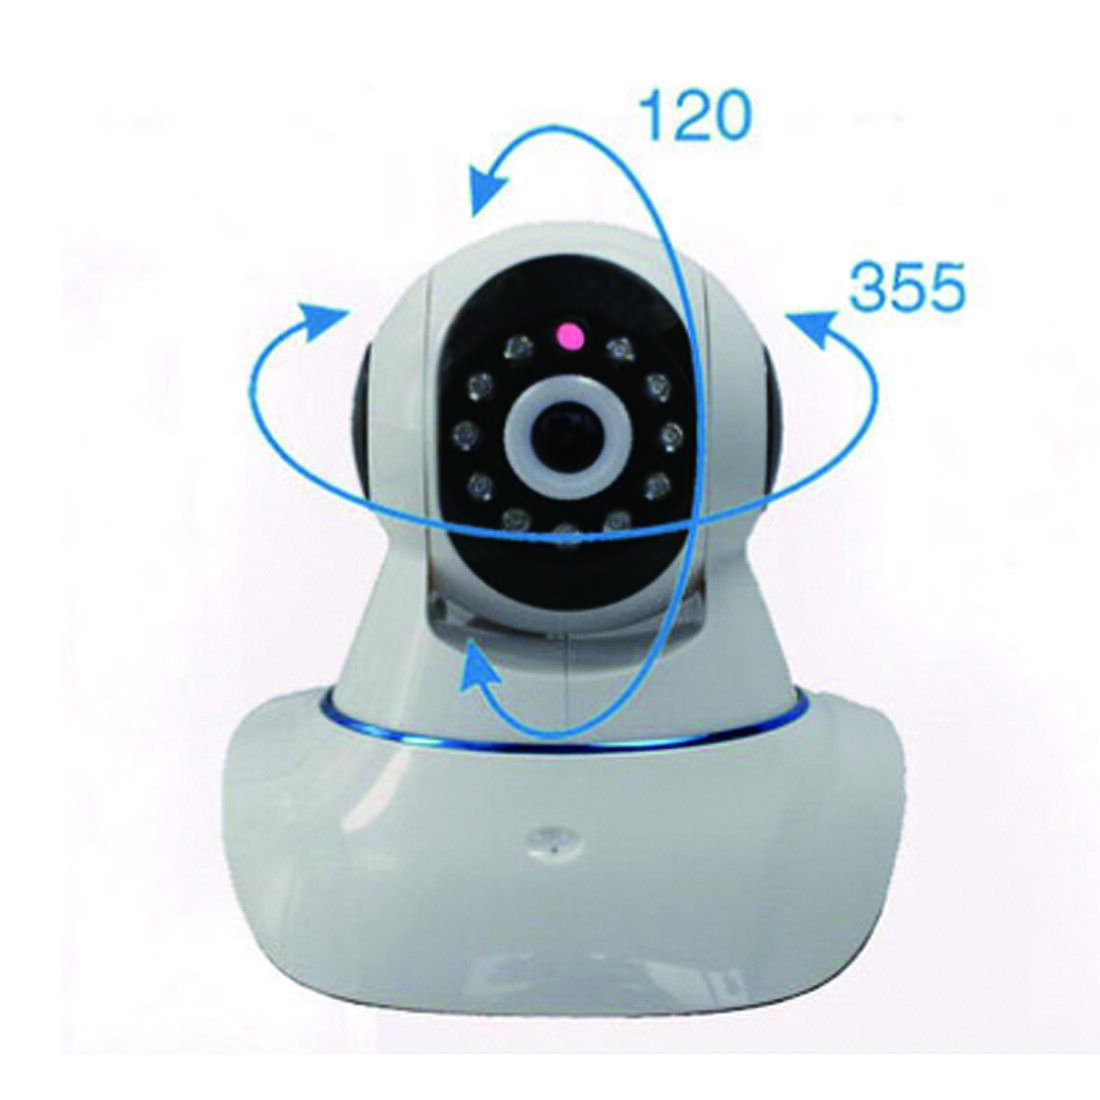 CCTV WIFI 720P high definition H.264 P2P IP online homepage infrared monitoring